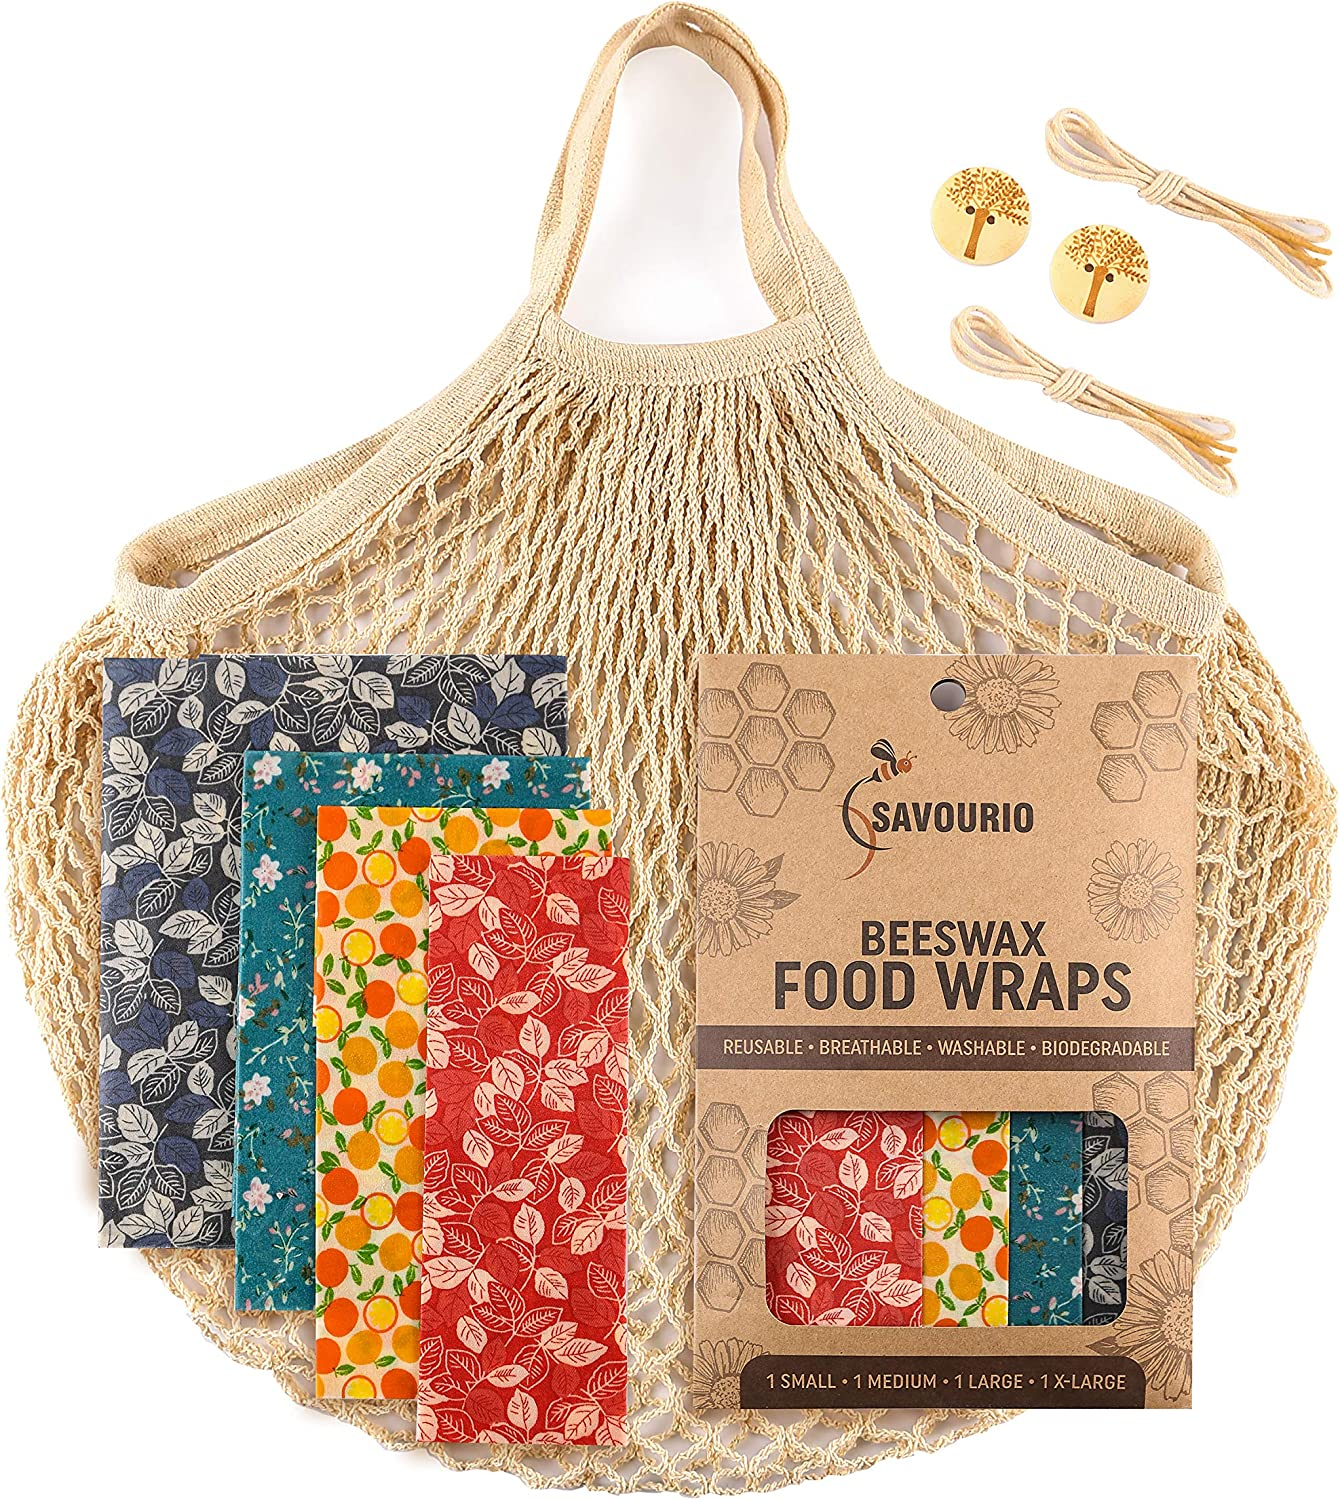 Beeswax Wrap - Bees Wrap Reusable Food Wrap - Bee Wax Wrap - Beeswax Wraps for Food - Beeswax Bread Wrap - Cheese Storage Bags - Sustainable Products